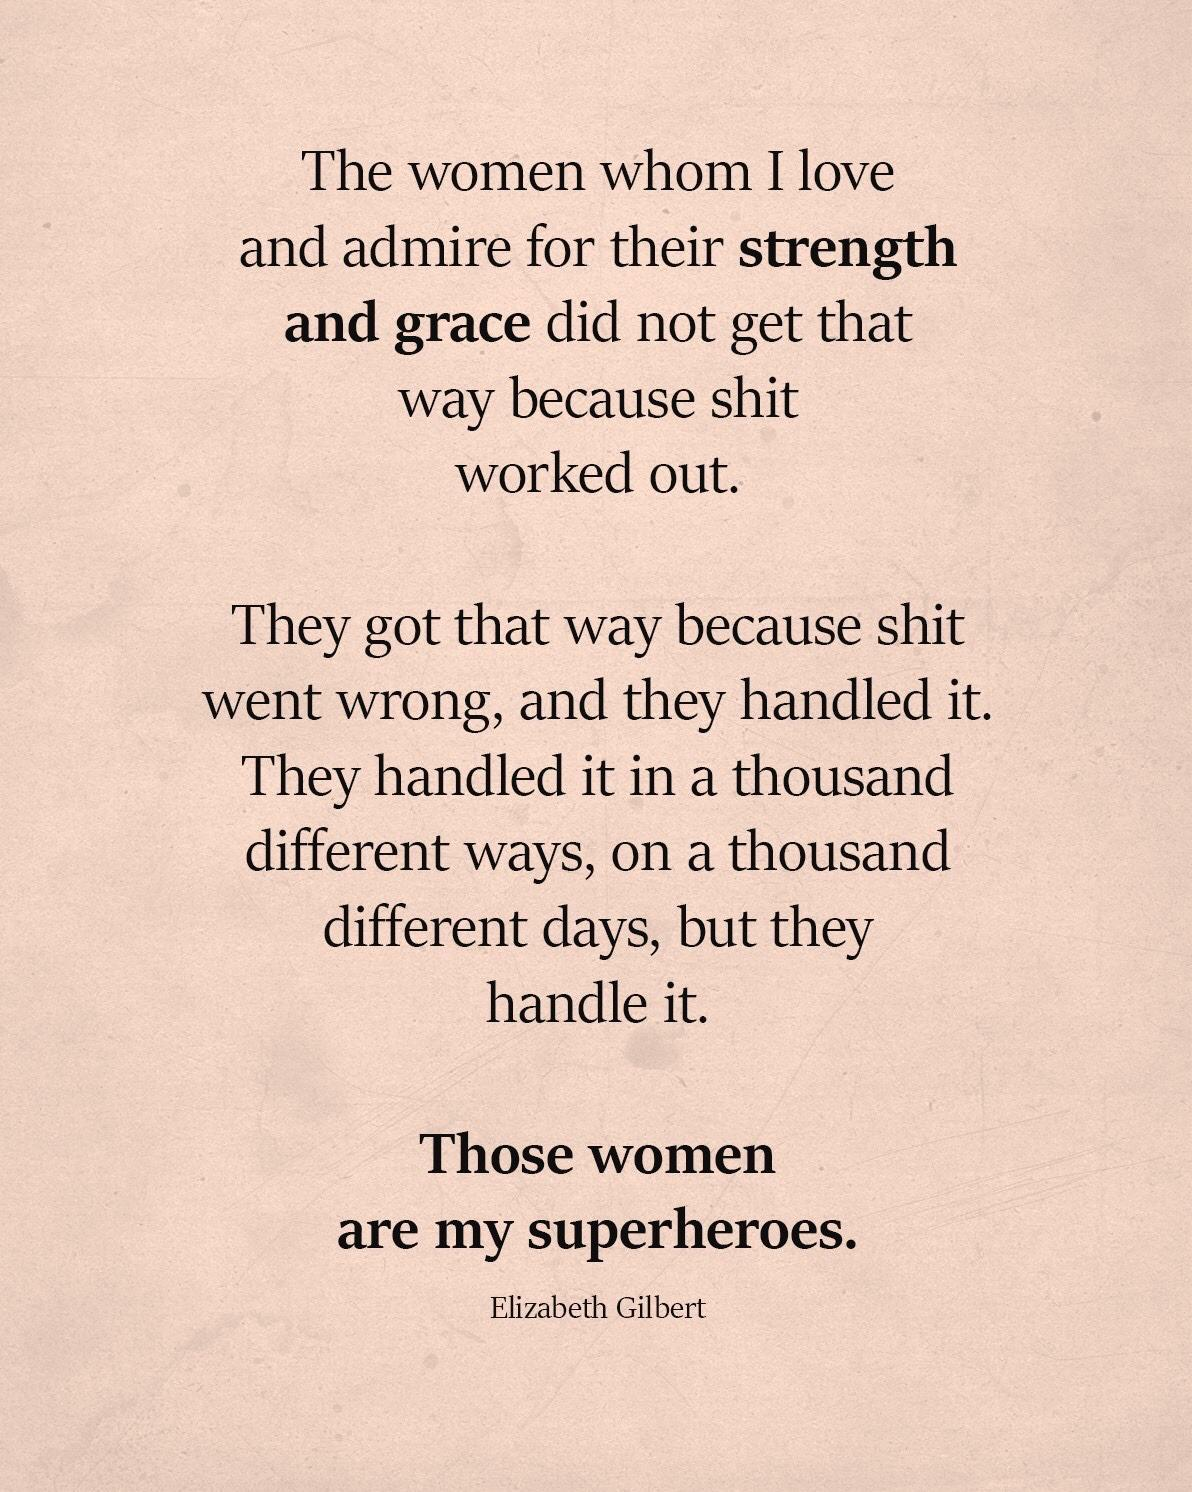 [image] Working on being strong enough to earn that cape I want to give the men and women that inspire me.